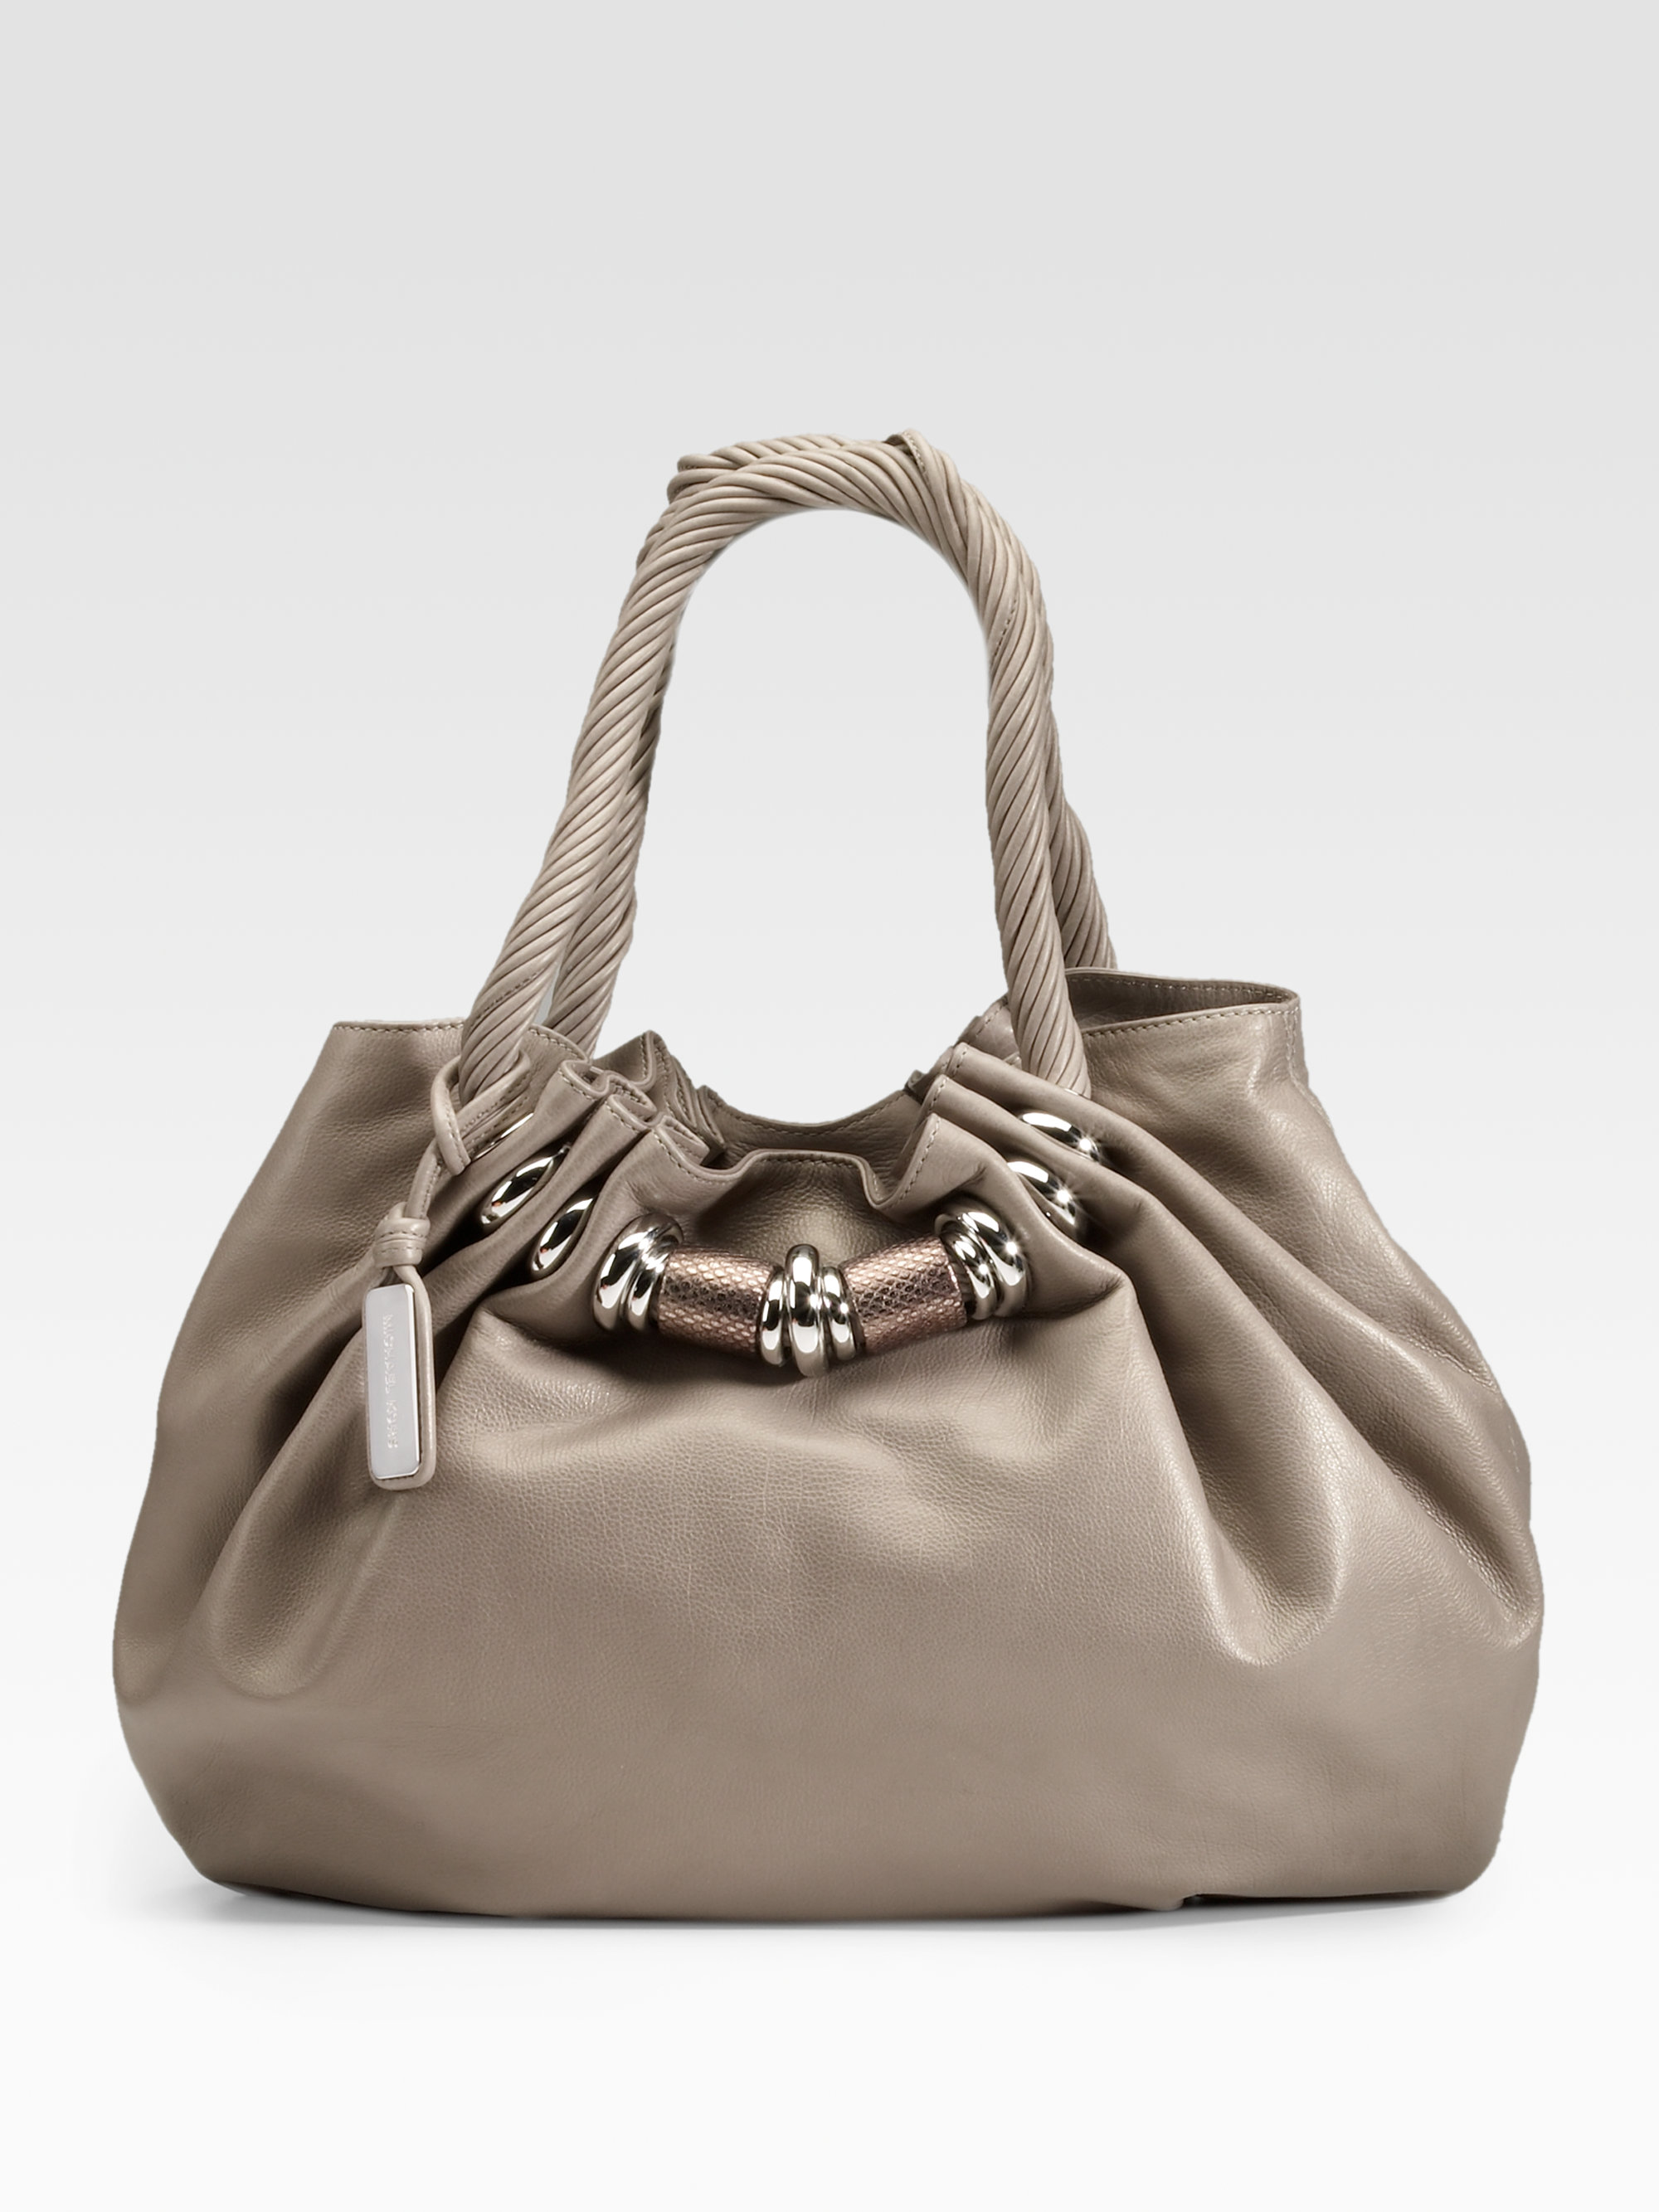 Best Price Michael Kors Tonne Totes - Bags Michael Kors Tonne Large Gathered Leather Tote Grey